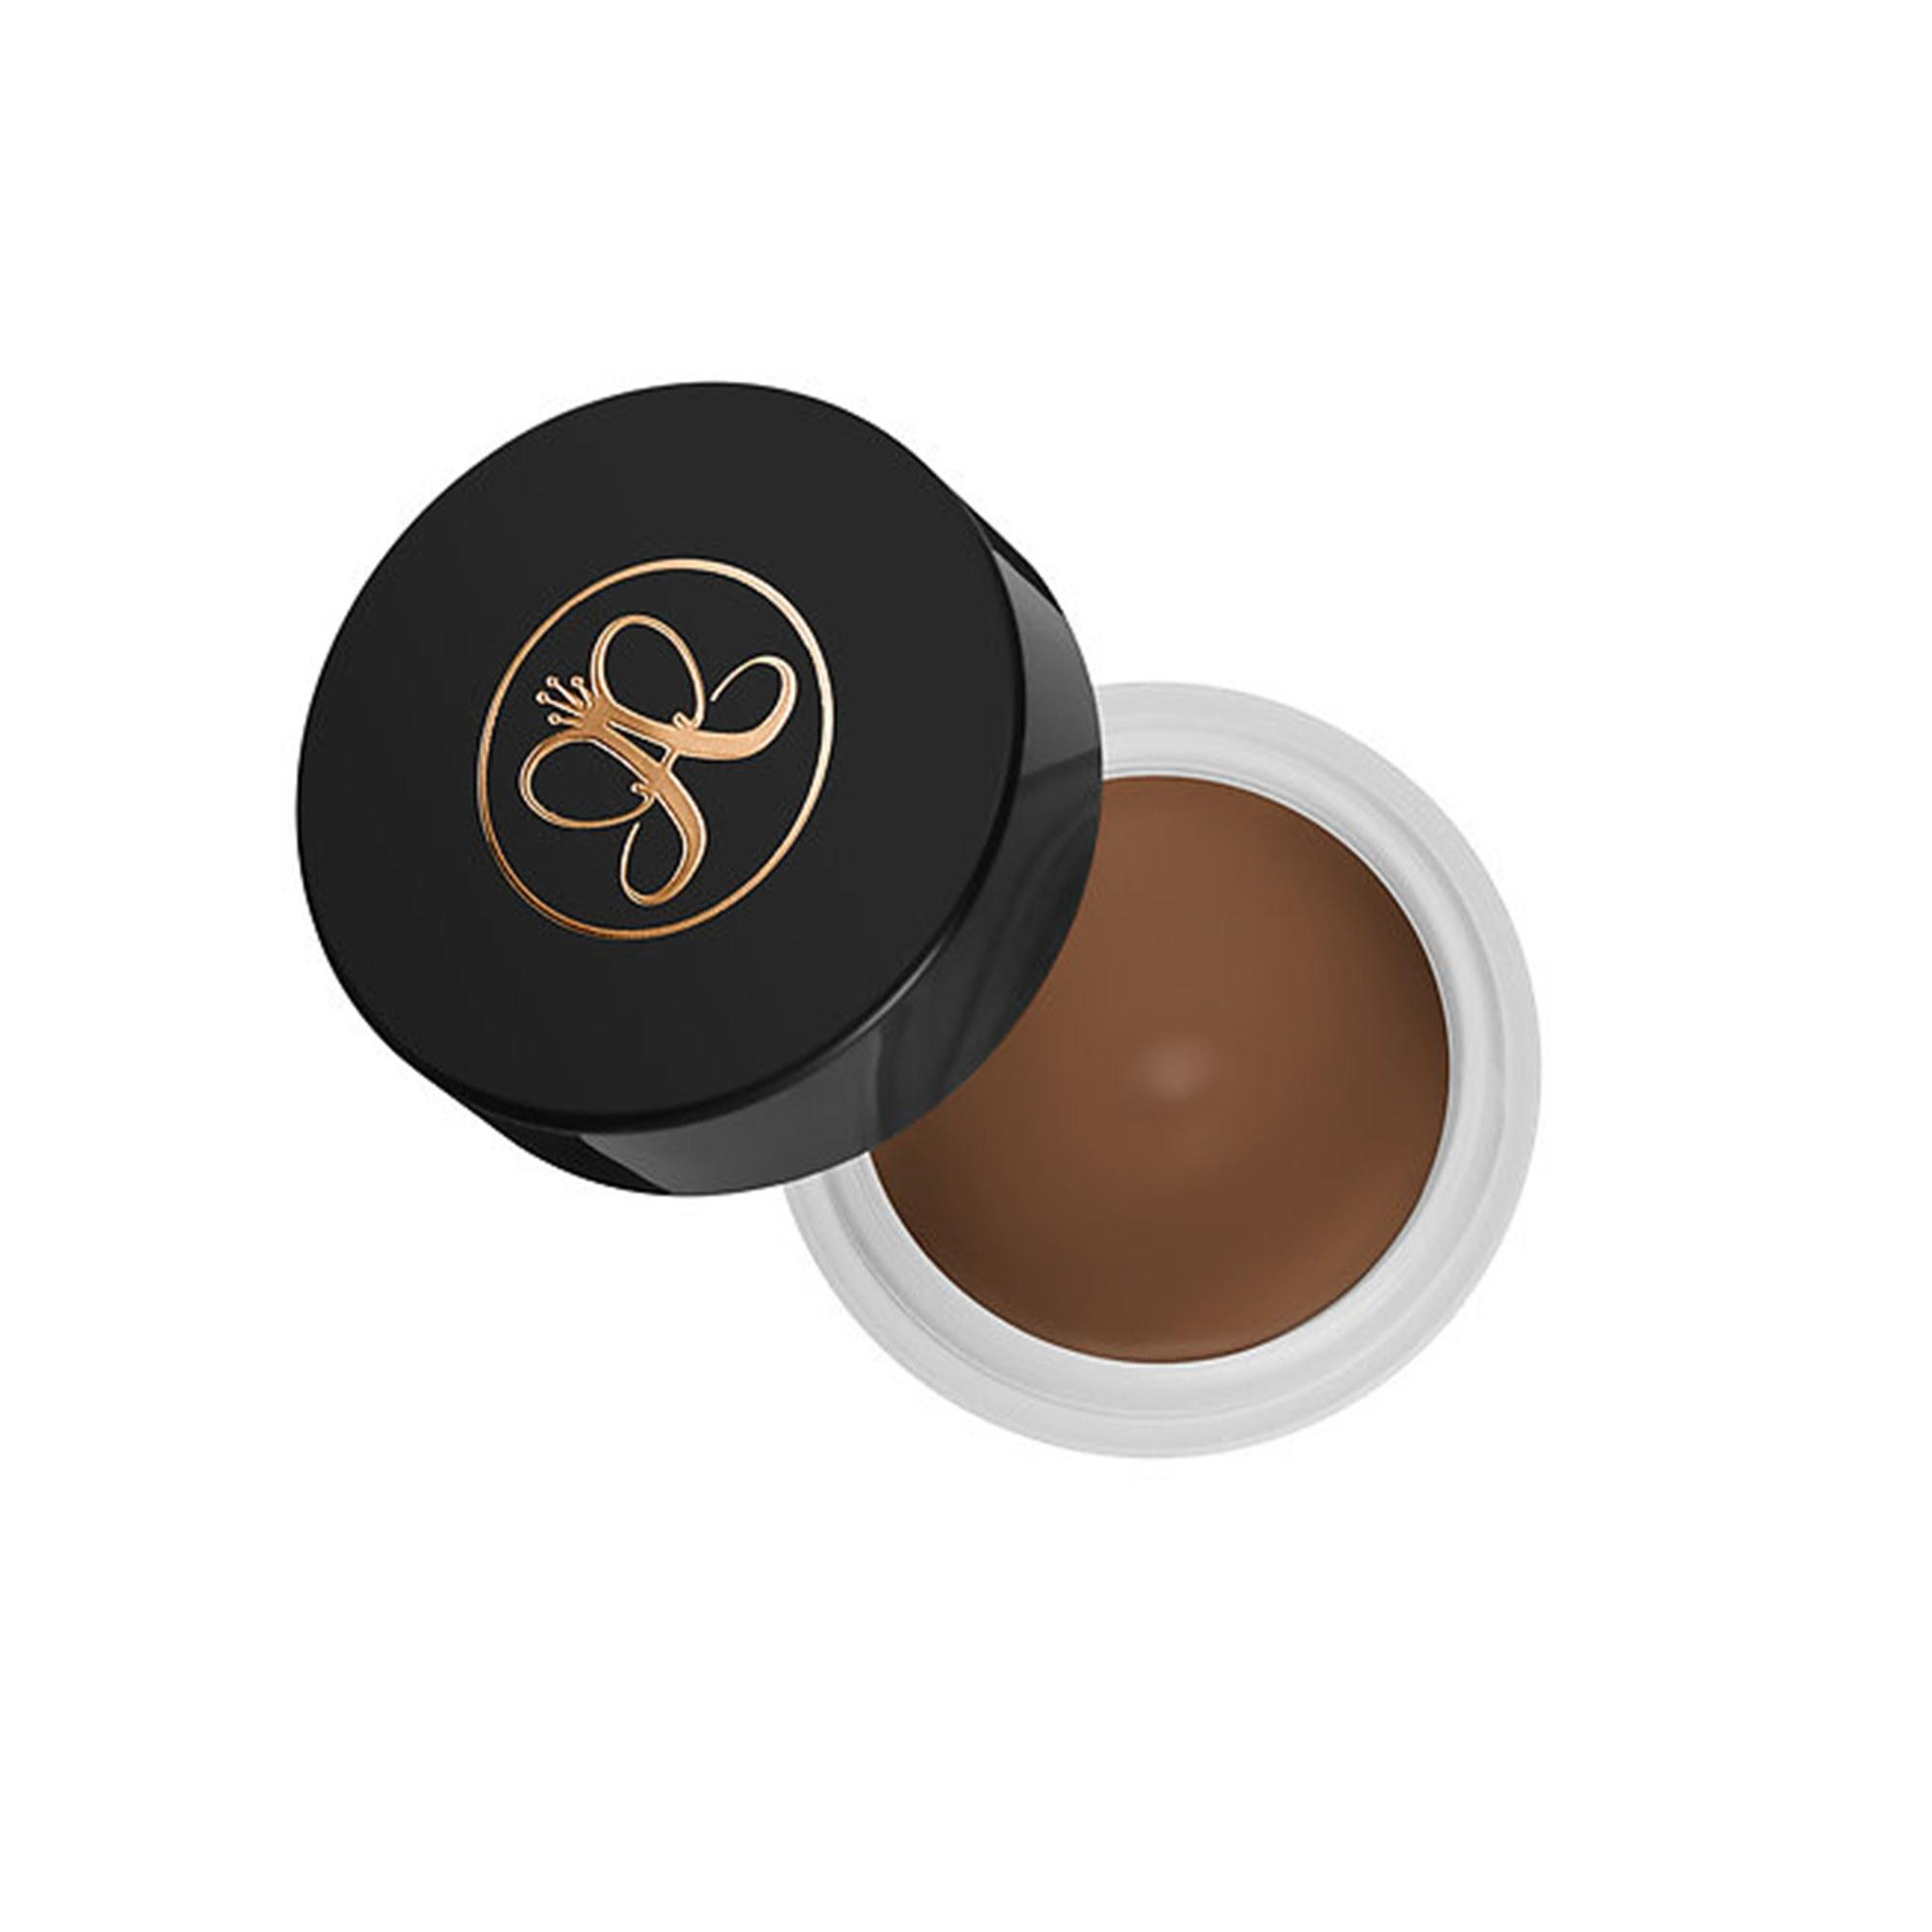 Best Undereye Concealers For Dark Circles